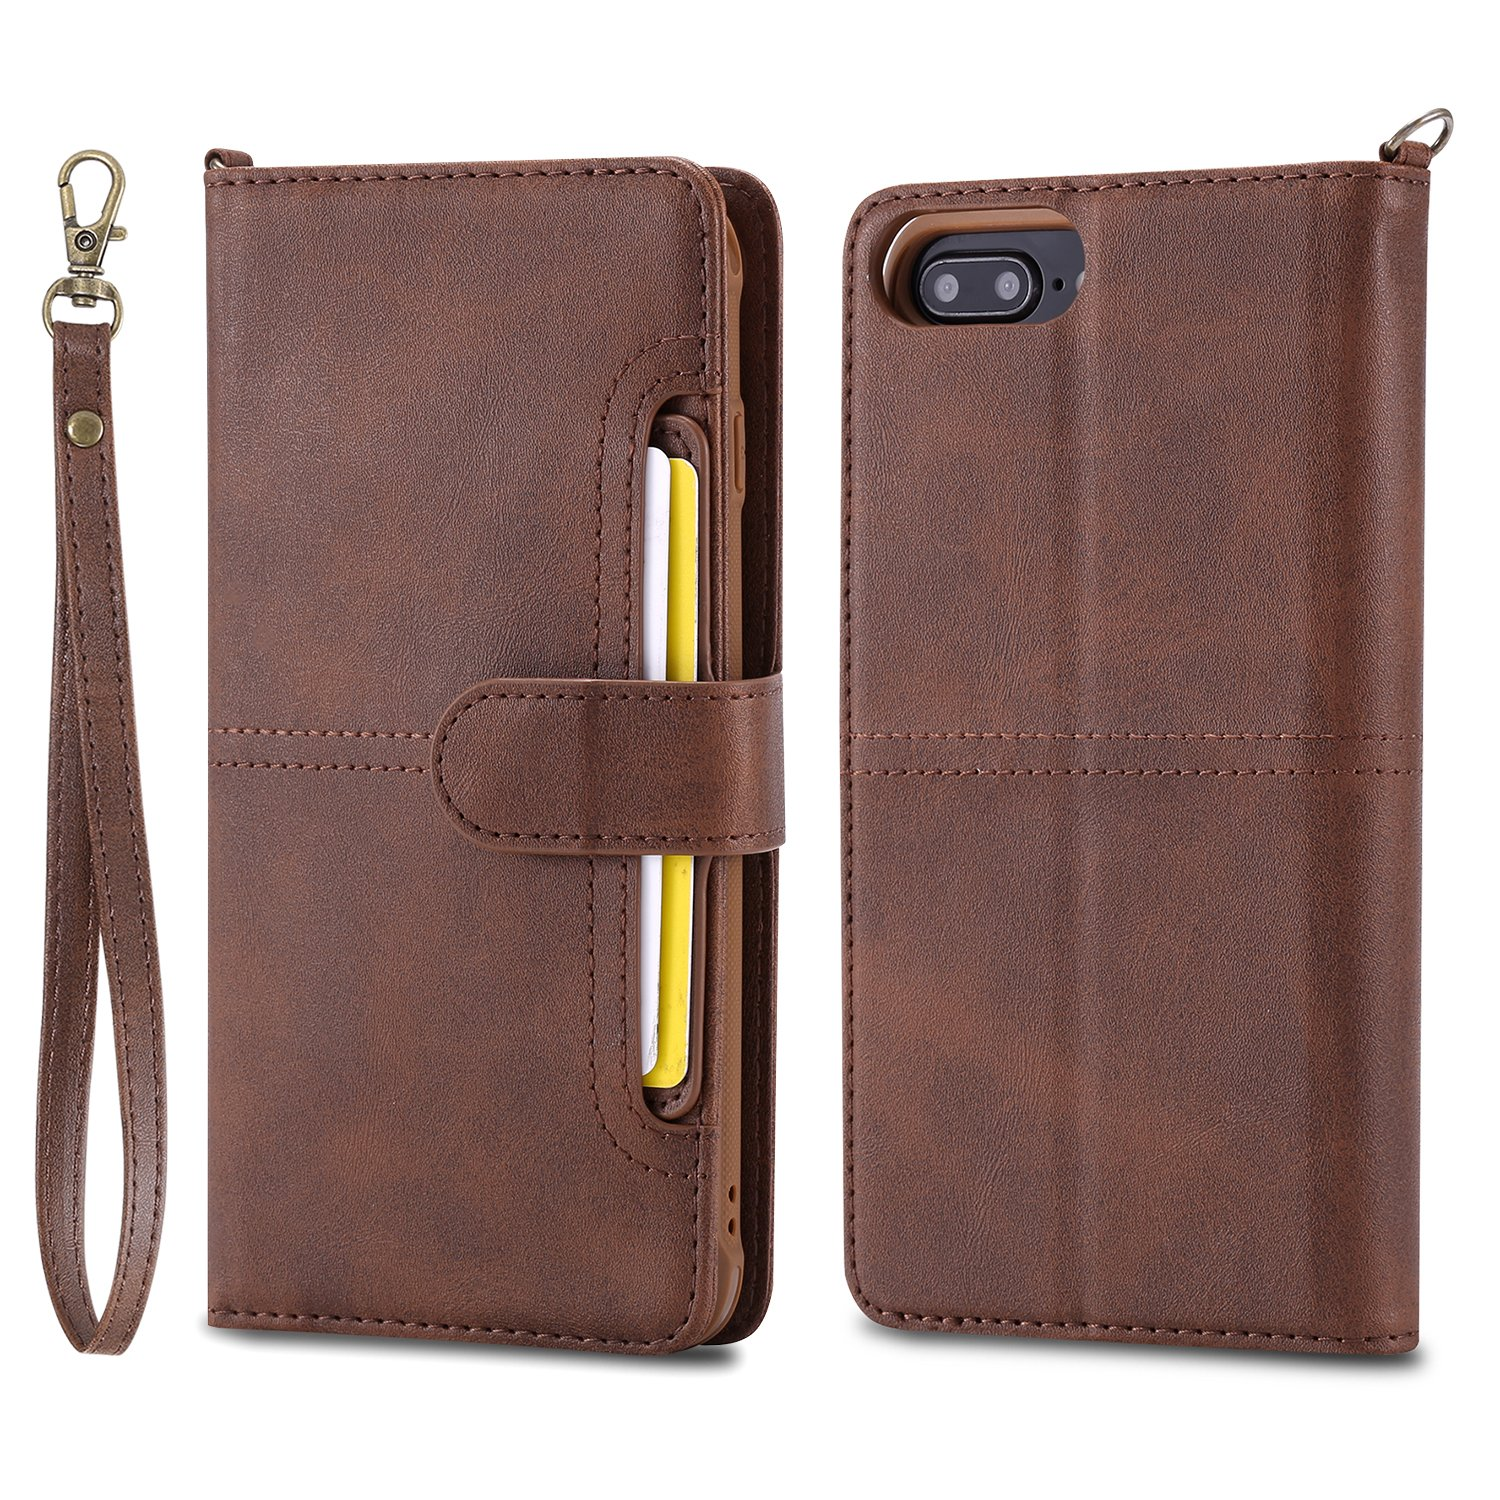 DAMONDY iPhone 8 Plus Case,iPhone 7 Plus, Detachable 2 in 1 Cover Stand Wallet Purse Card Slot ID Holders Design Flip Cover Pocket Purse Leather Magnetic Protective for iPhone 7 8 Plus-coffee